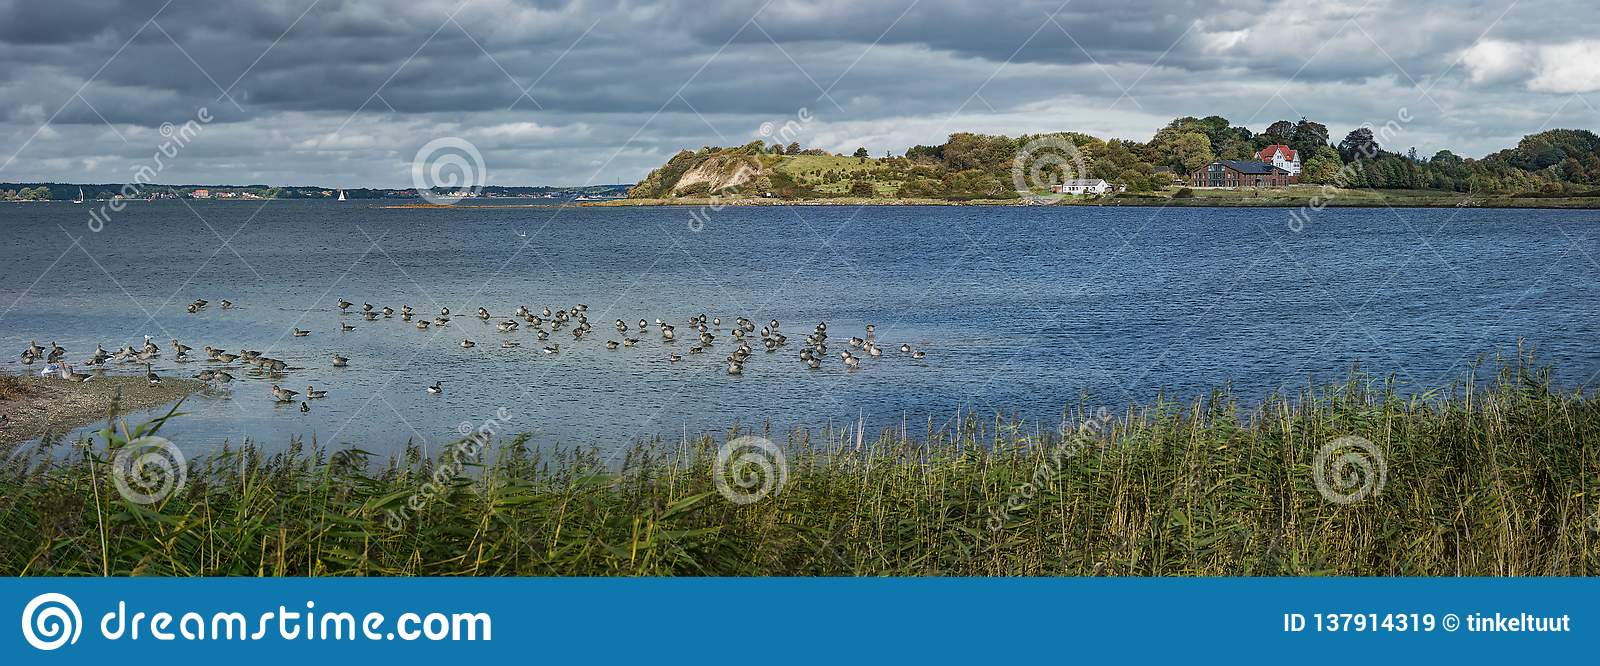 Holnis peninsula on the Flensburg Fjord with grey geese